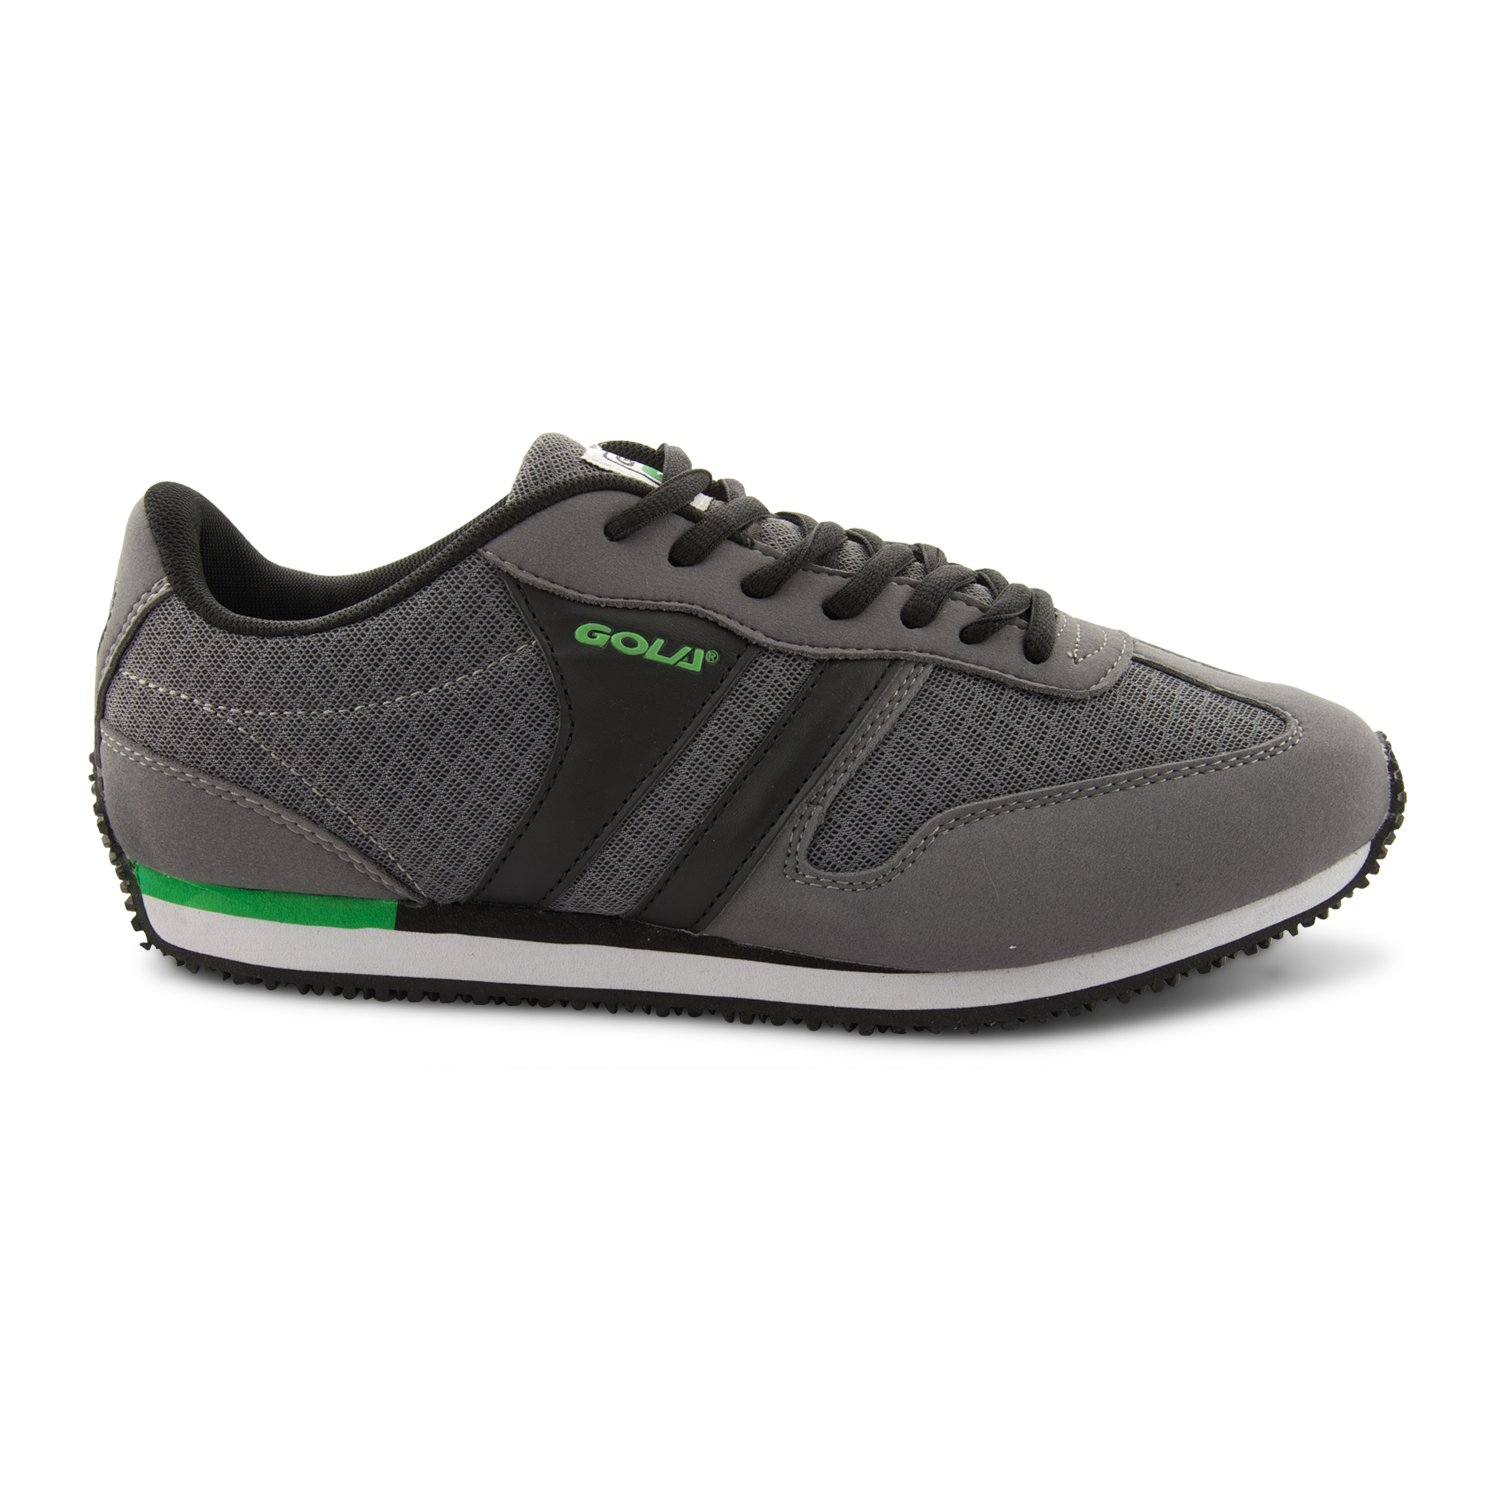 New Mens Gola Lace Up Sports Running Retro Classic Trainers Shoes Sizes UK  7-12: Amazon.co.uk: Shoes & Bags